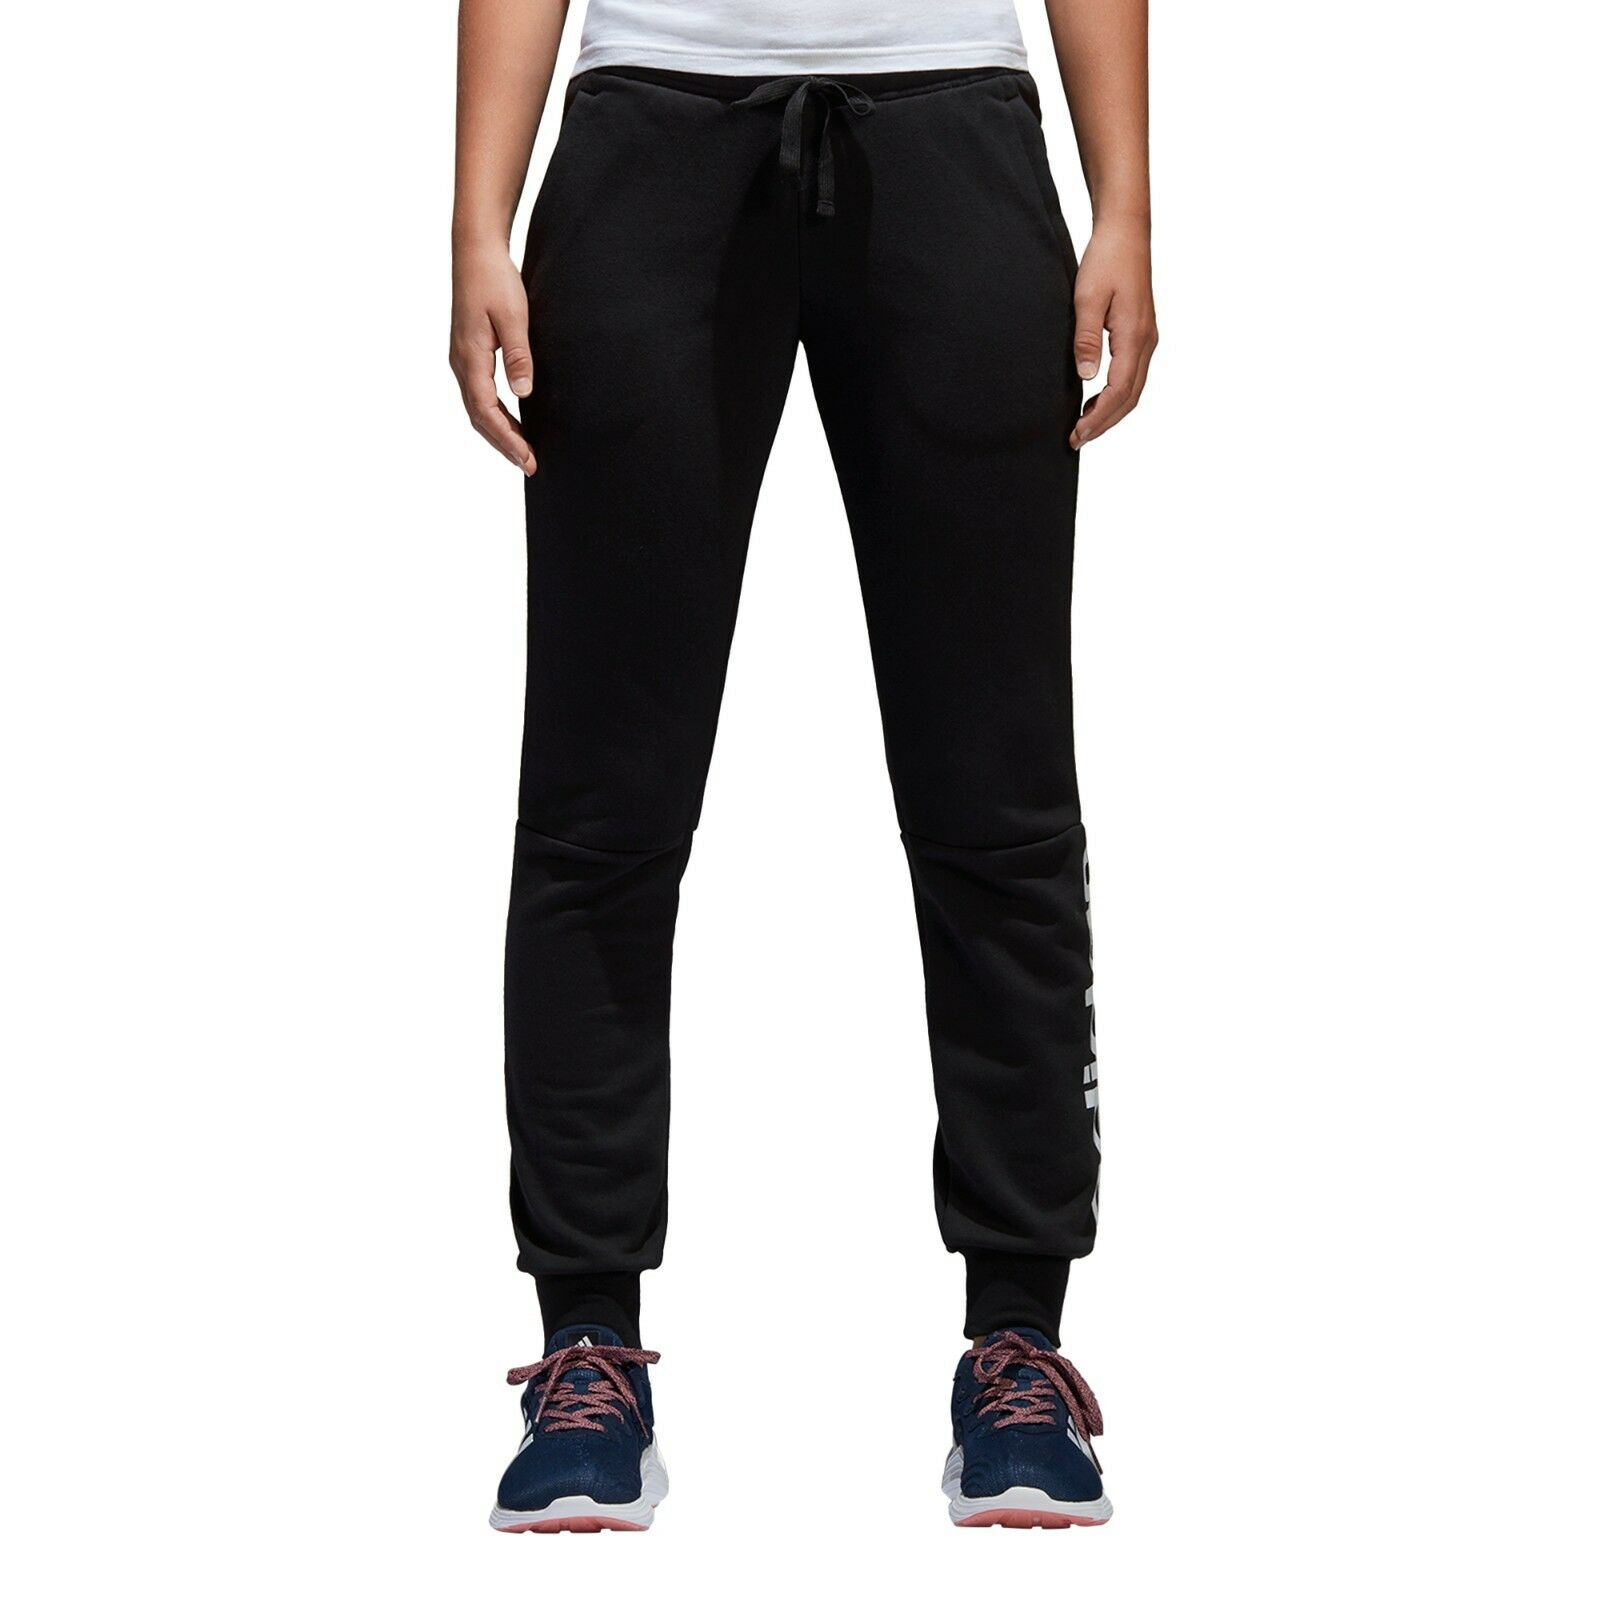 ac4dfacf94dfb2 Adidas Women Pants Athletic Essentials Linear Trousers S97154 Training  Running